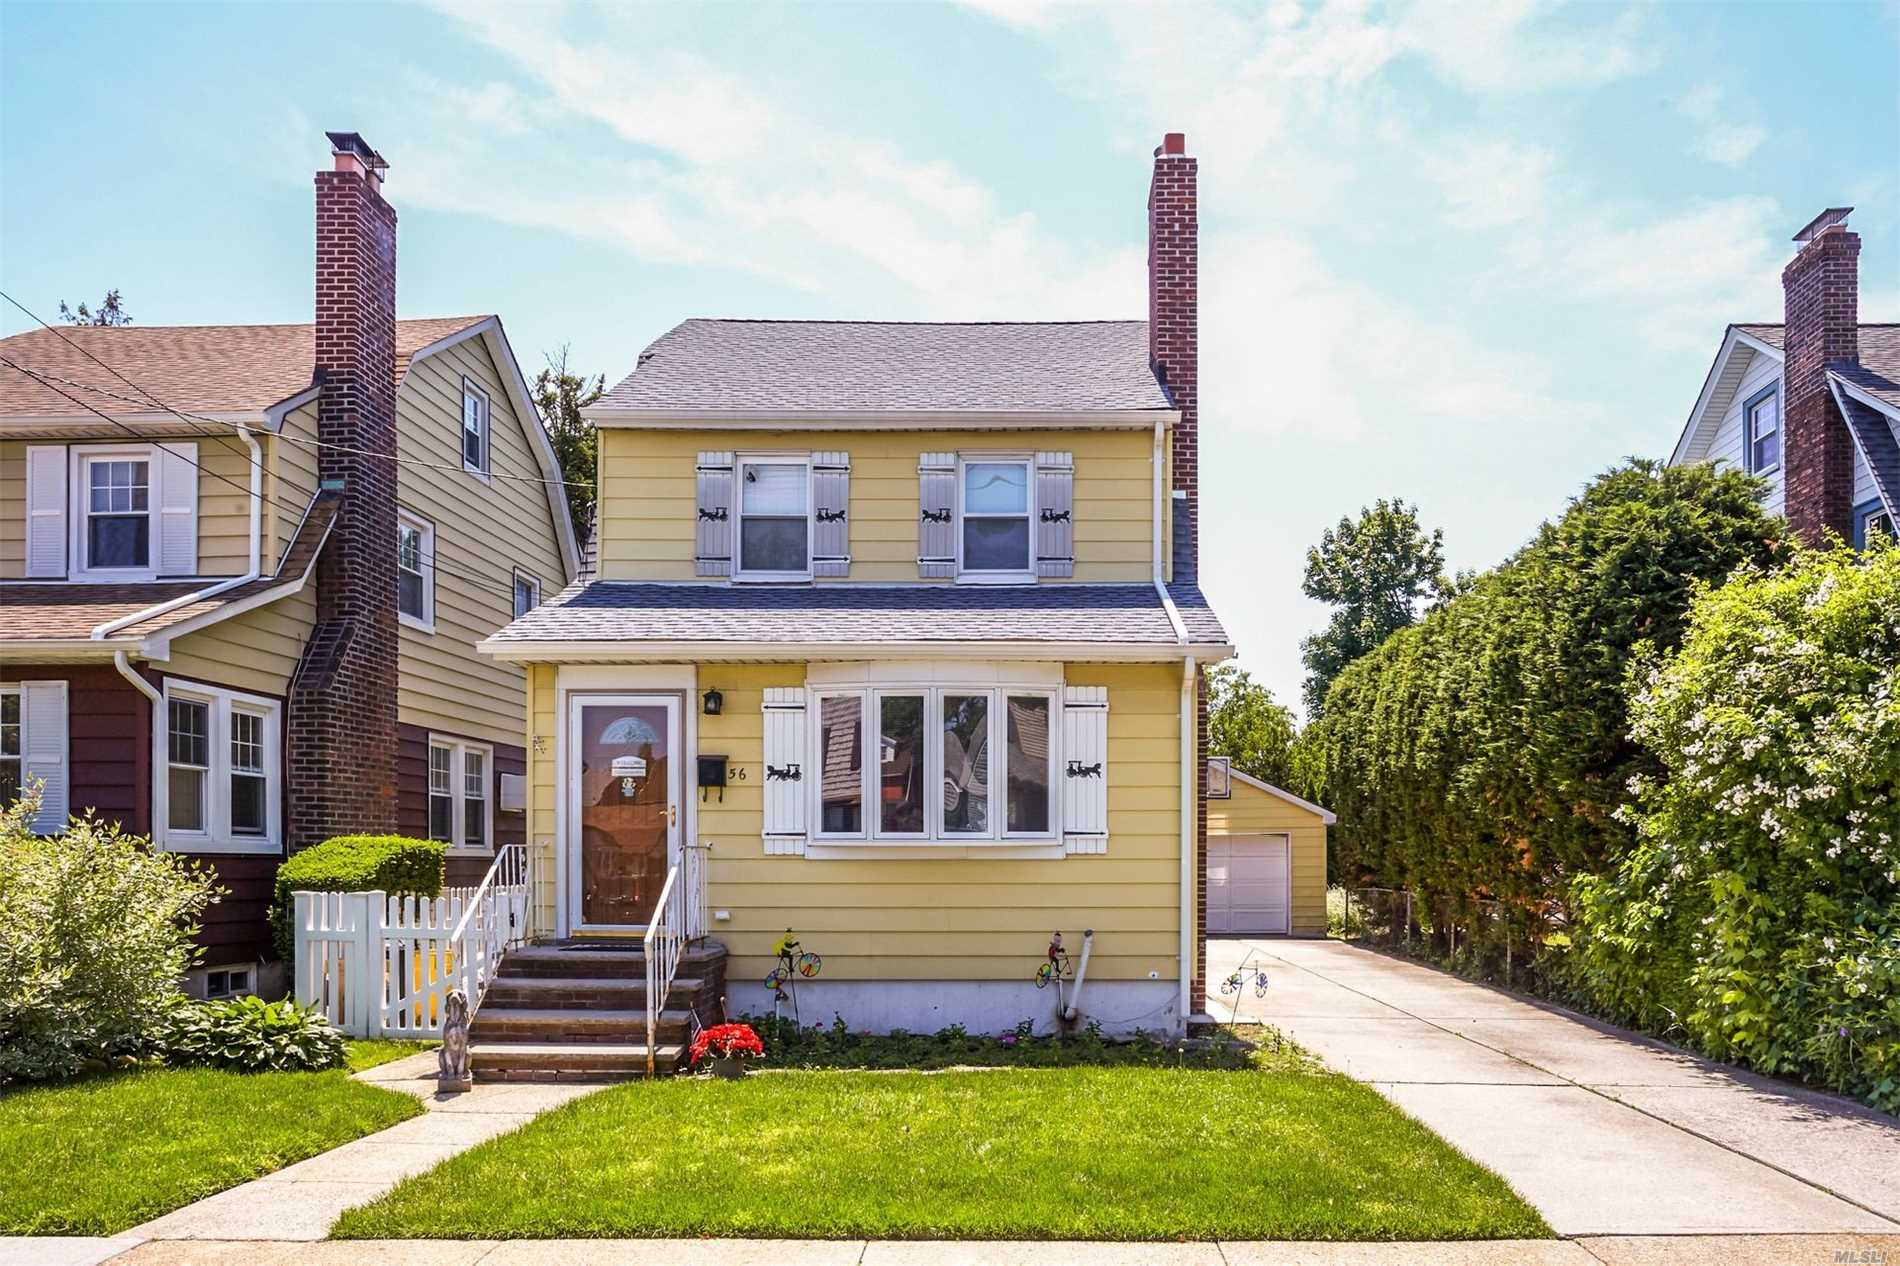 Charming Home Located In The Incorporated Village Of Floral Park. Close To Rec Center, Transportation, & Shopping. Oversize Property For F.P. 40 X 143, Home Features Lr W/Fp, Fdr, Eik, 2.5 Baths, Three Bedrooms, (Being Used As A Two Bedroom) Full Basement,  Walk Up Attic, Two Car Garage, A Must See, Turn Key